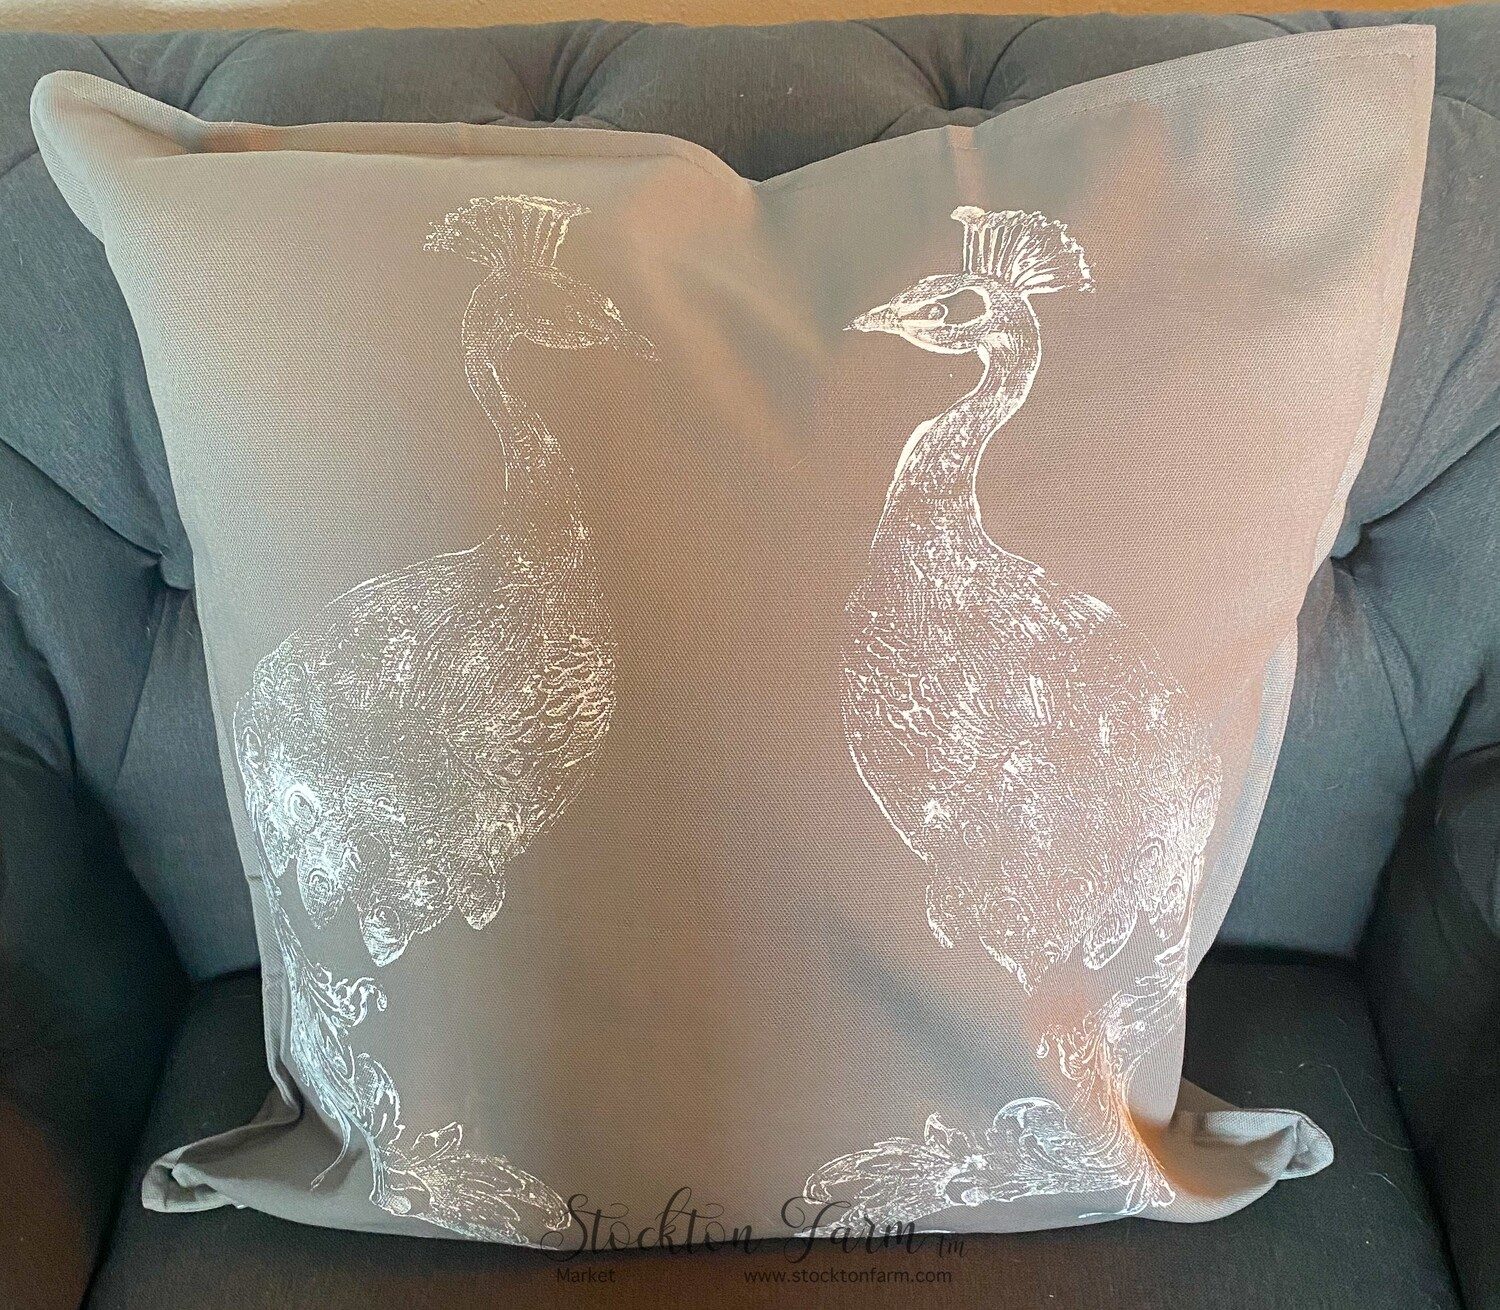 Peacock Gray Throw Pillow Covers 20x20 - Free Shipping!